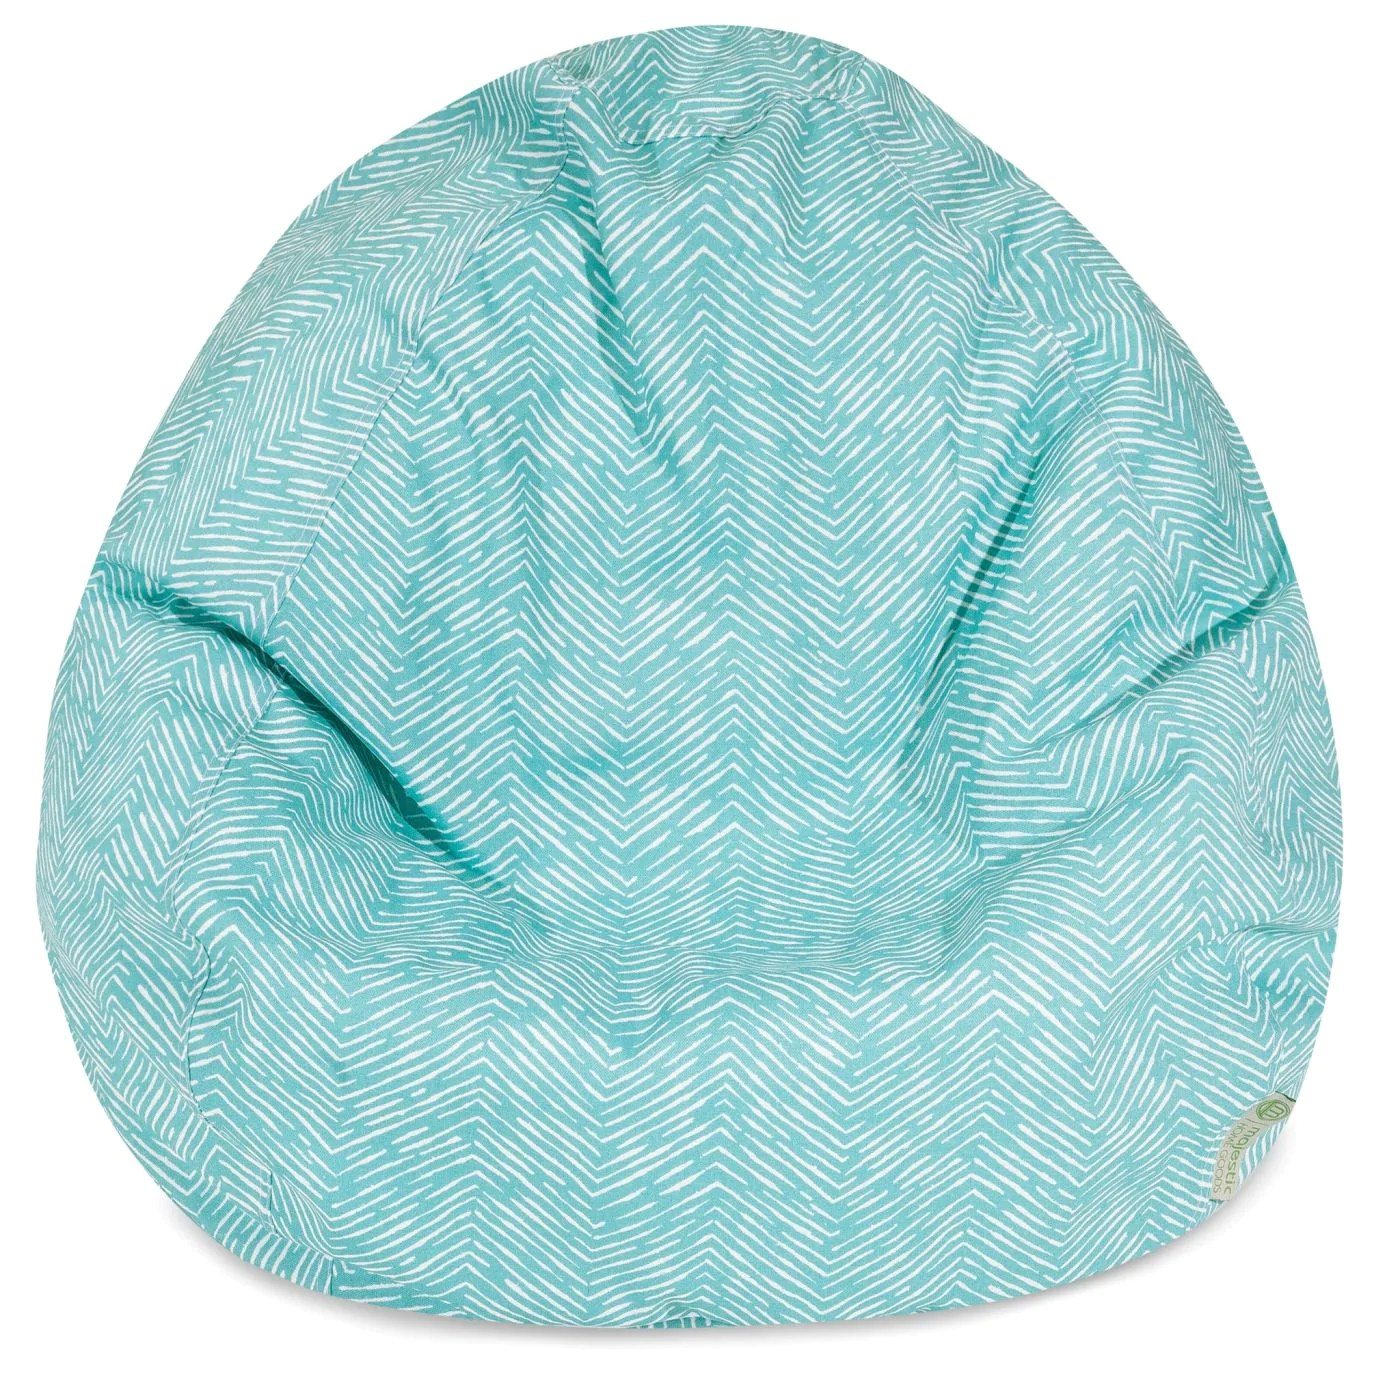 teal bean bag chair covers for weddings canada amazing deal on majestic home 85907224093 navajo